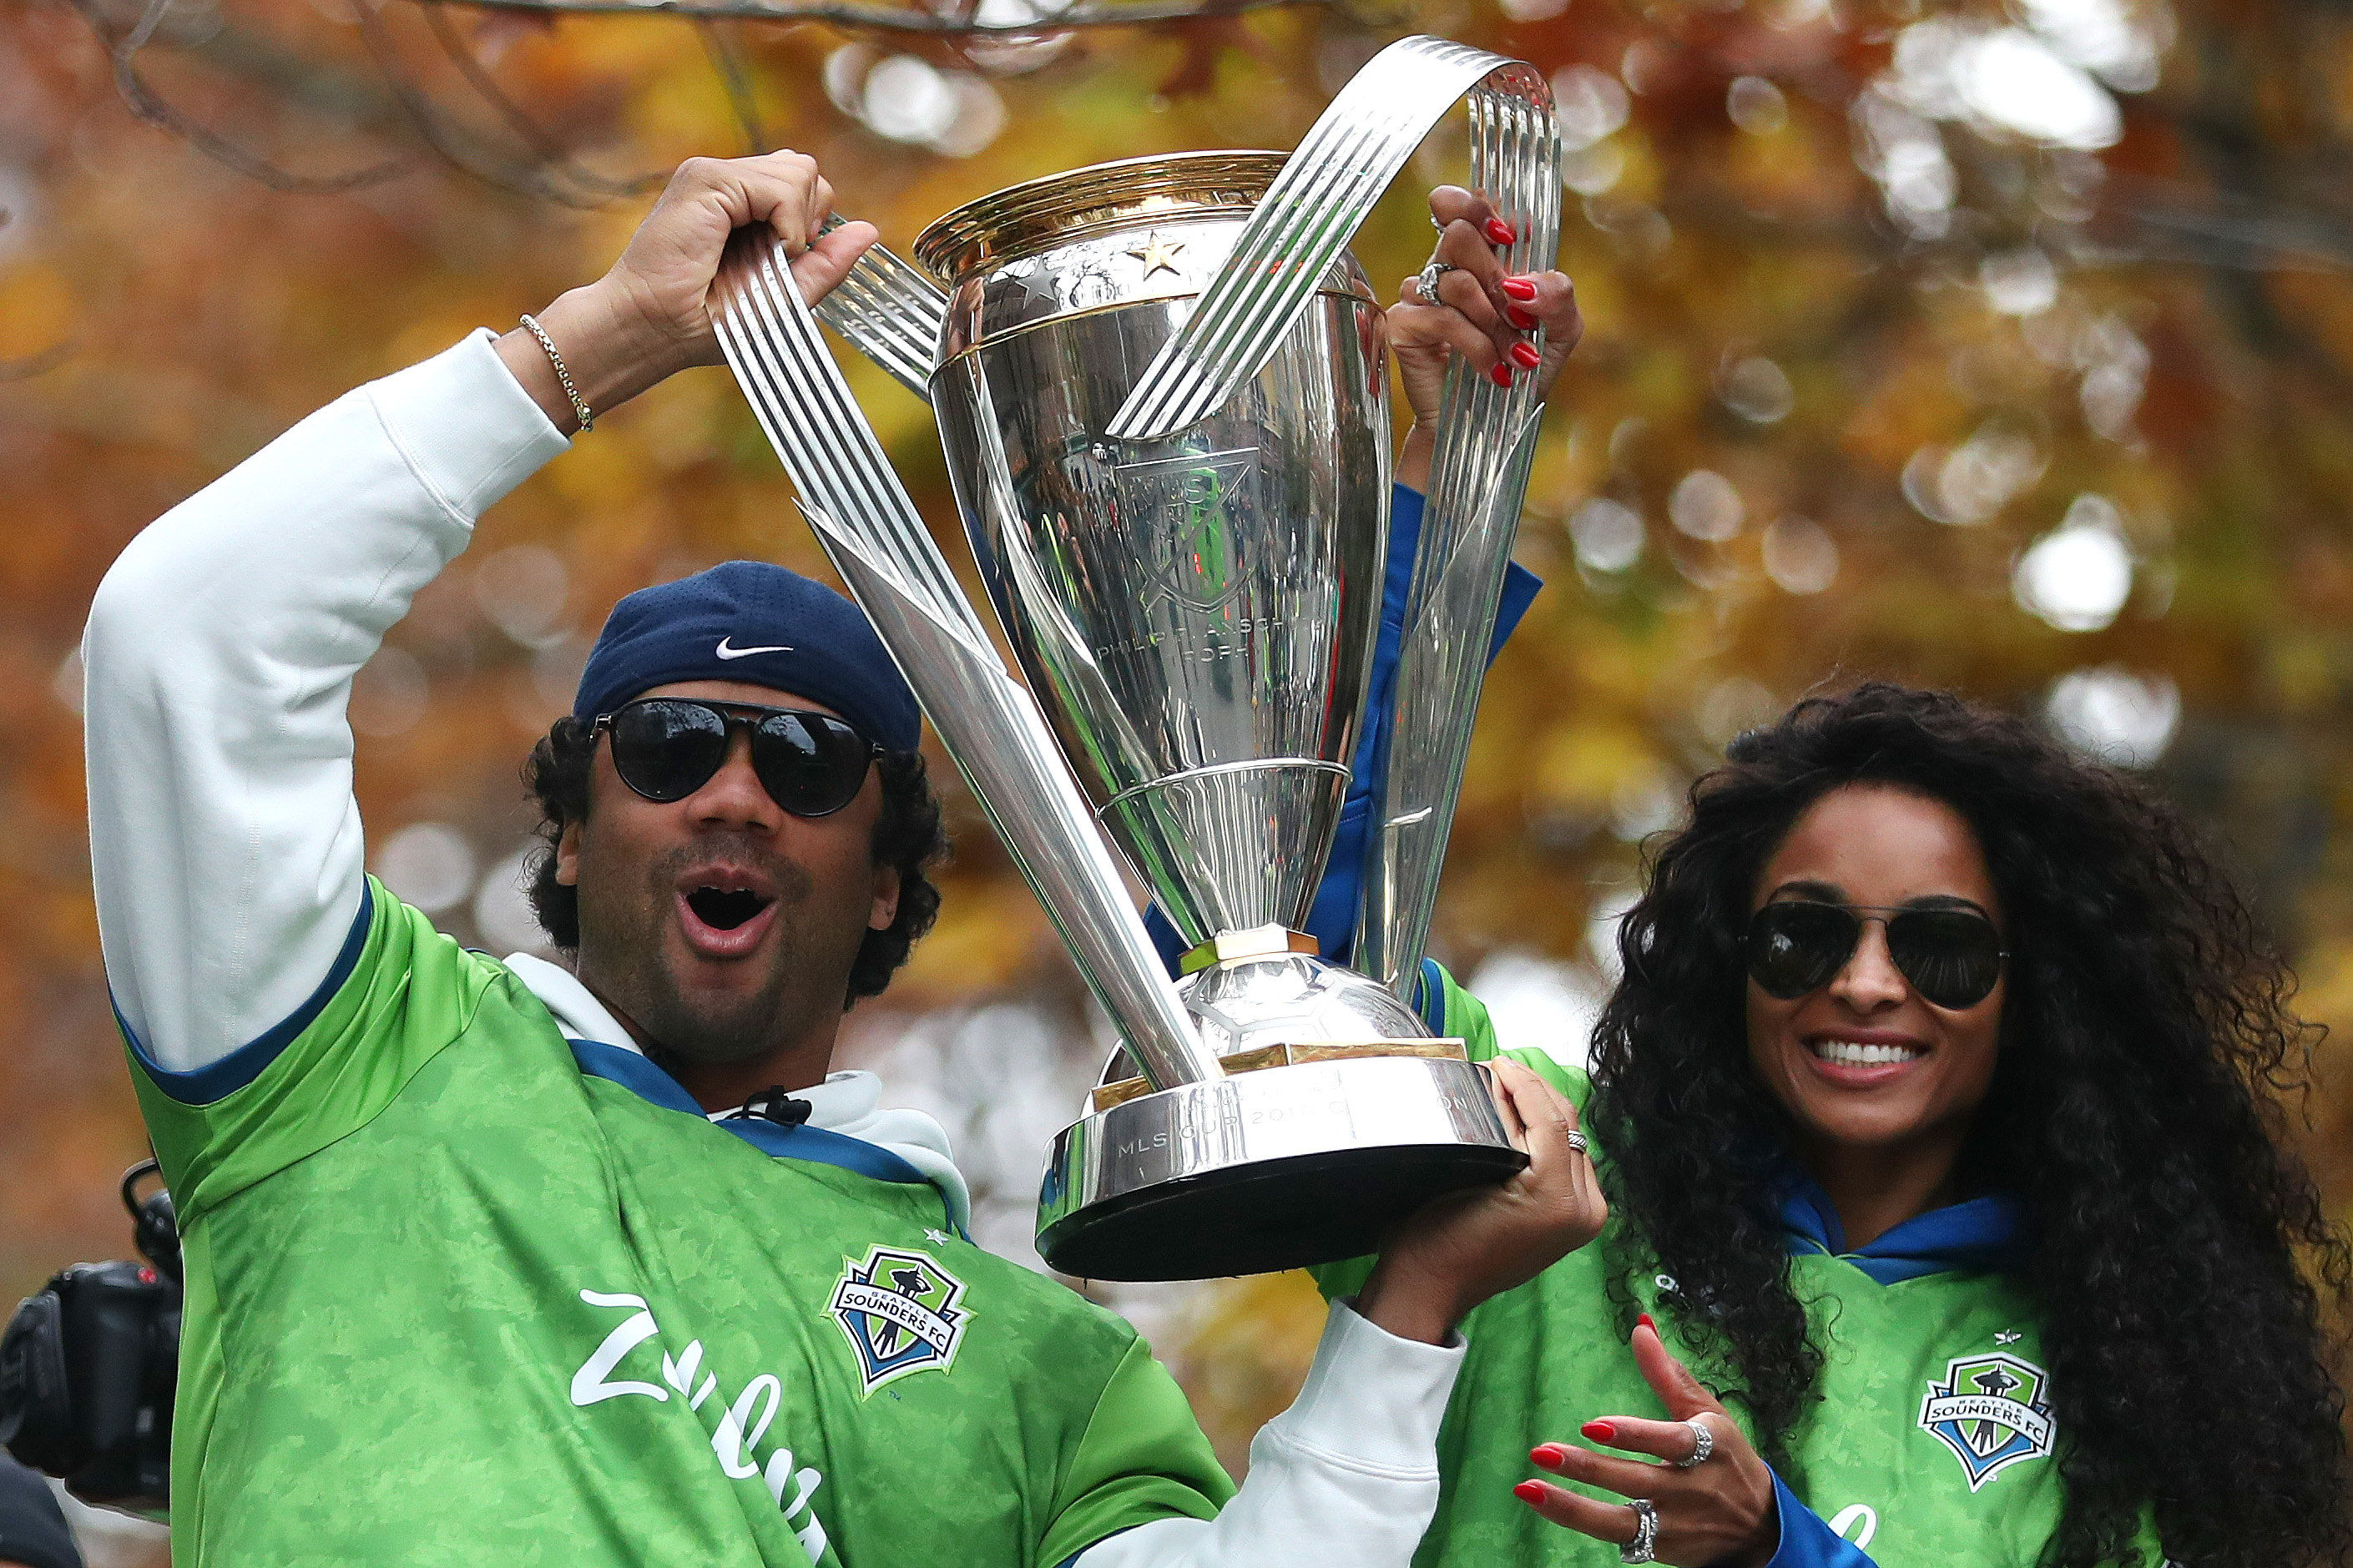 Russell holding up a trophy as Ciara smiles while standing next to him